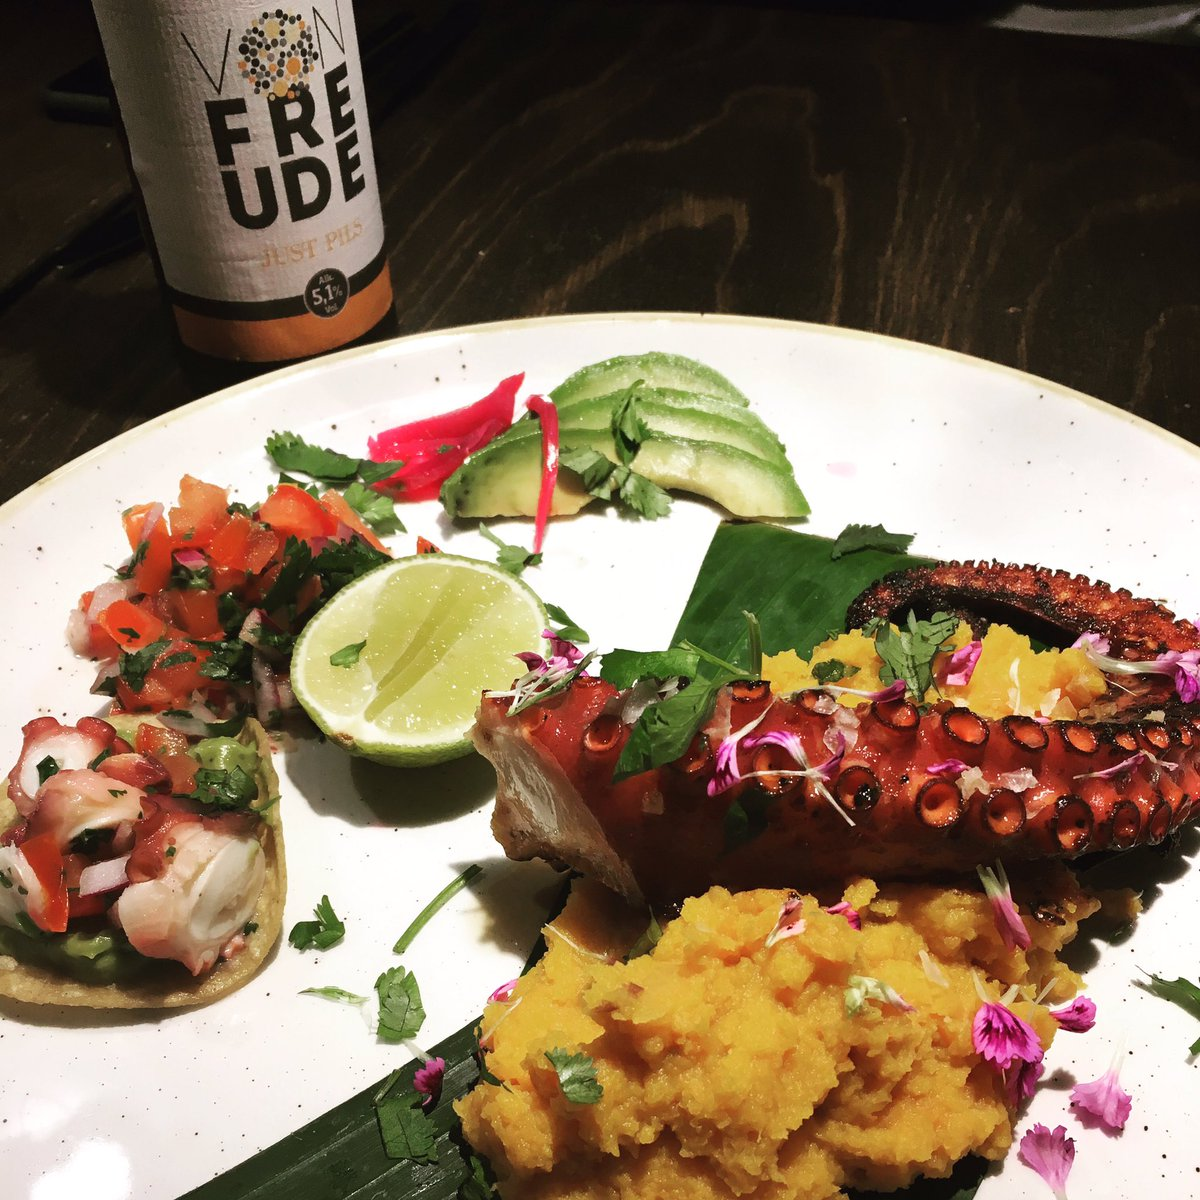 Wanna try something awesome? Come to #Hamburg and have dinner at Roots Fusion Streetfood! Pulpo Mexican style with superfresh JUST PILS. https://t.co/LxuFqAB5X2